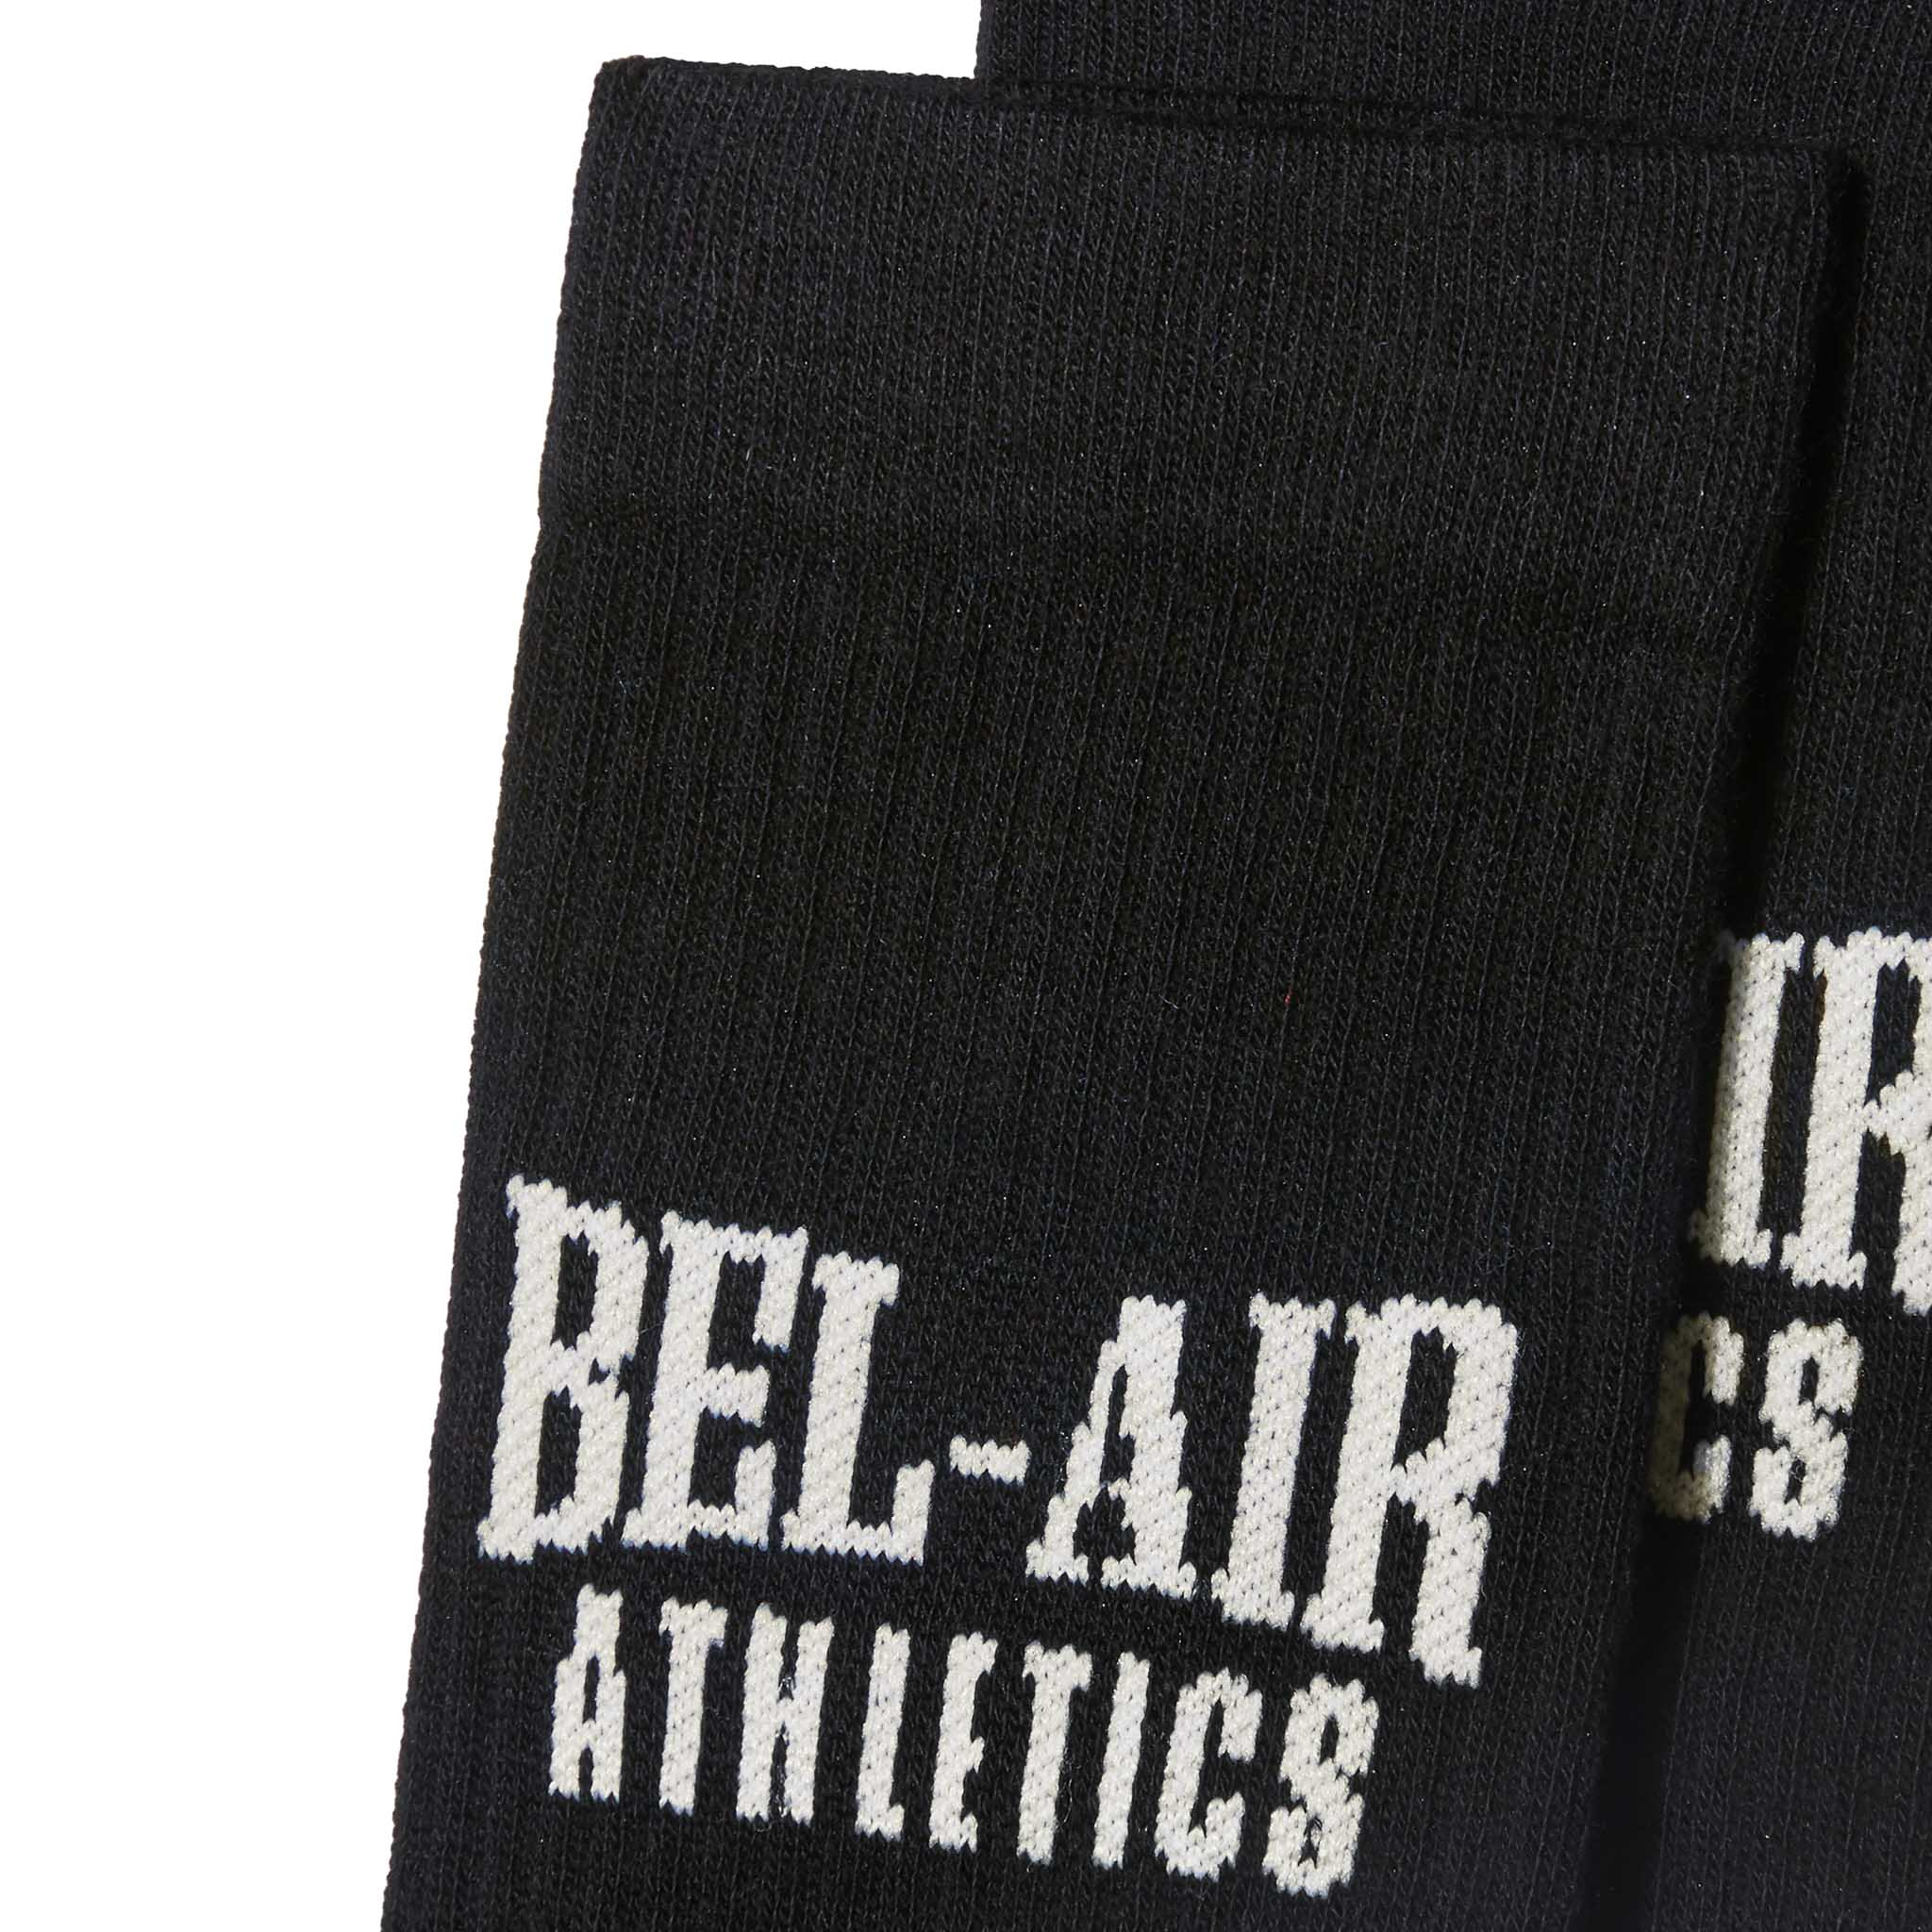 Bel Air Athletics Socks - Vintage black with Chalk White jacquard